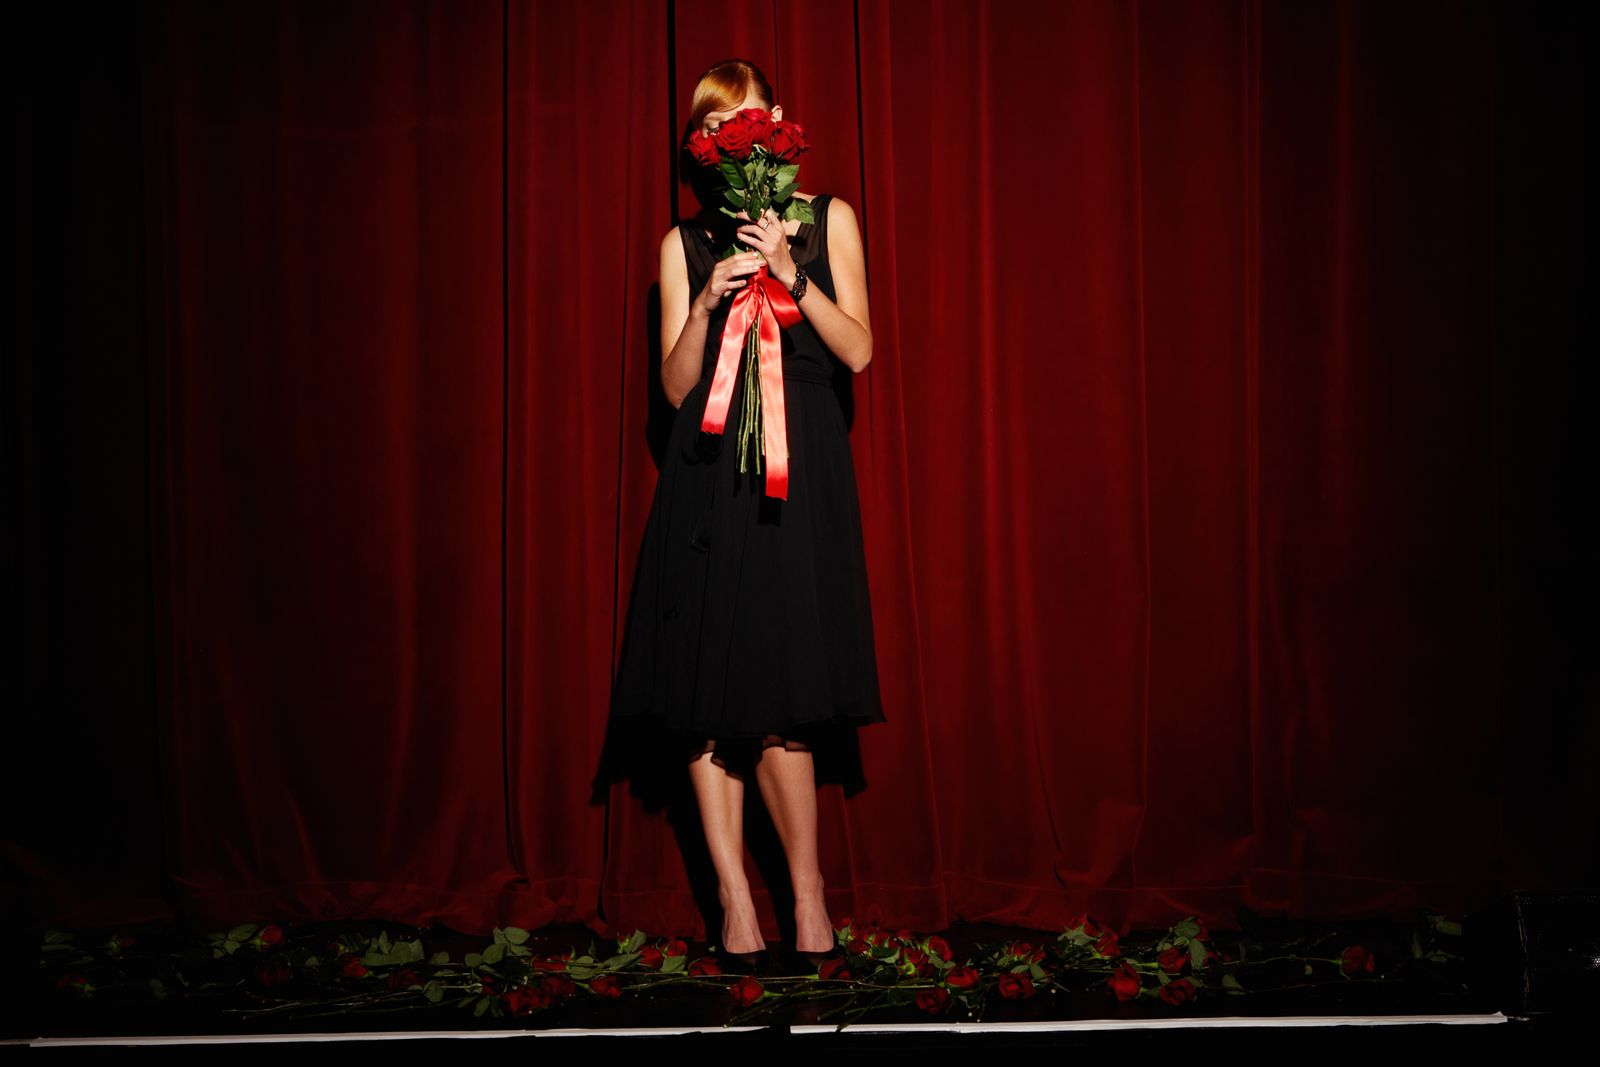 EINMALIGE VERWENDUNG Inrovertiert/ Arbeit - Young woman on stage holding red roses, low section